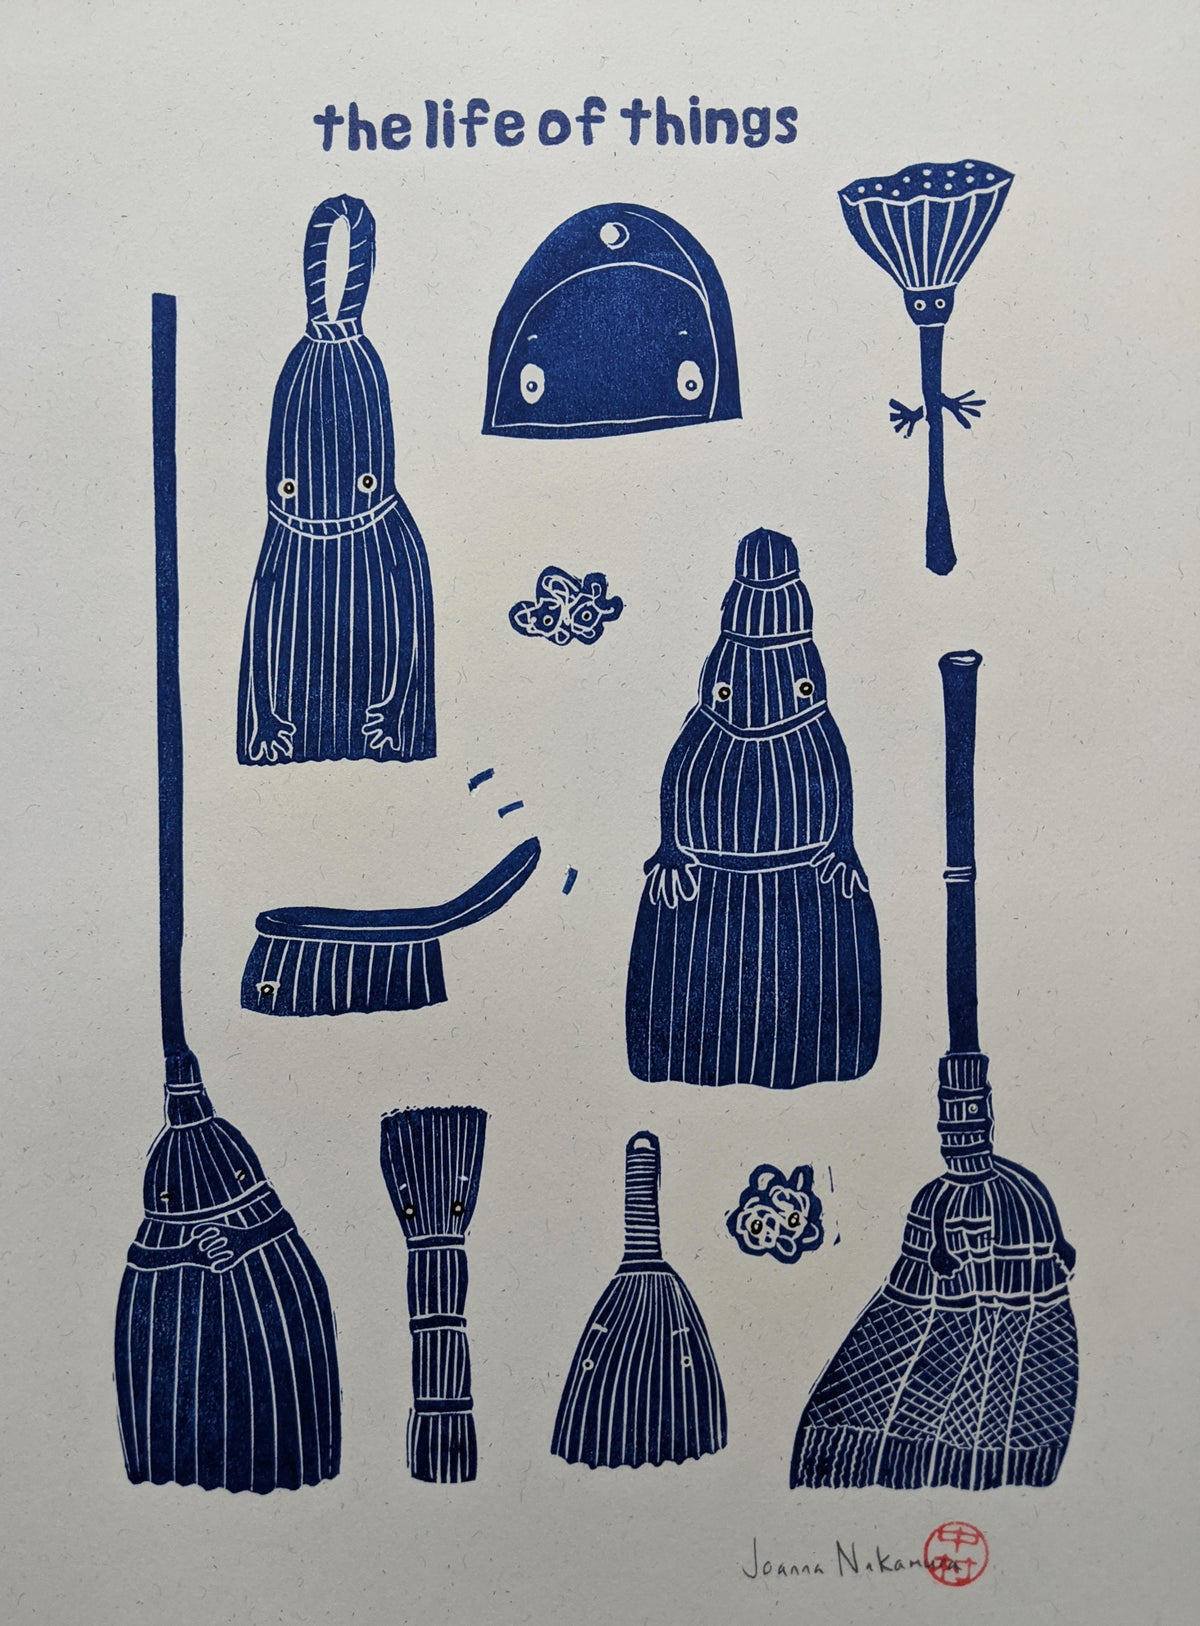 Image of the life of things - brushes + brooms